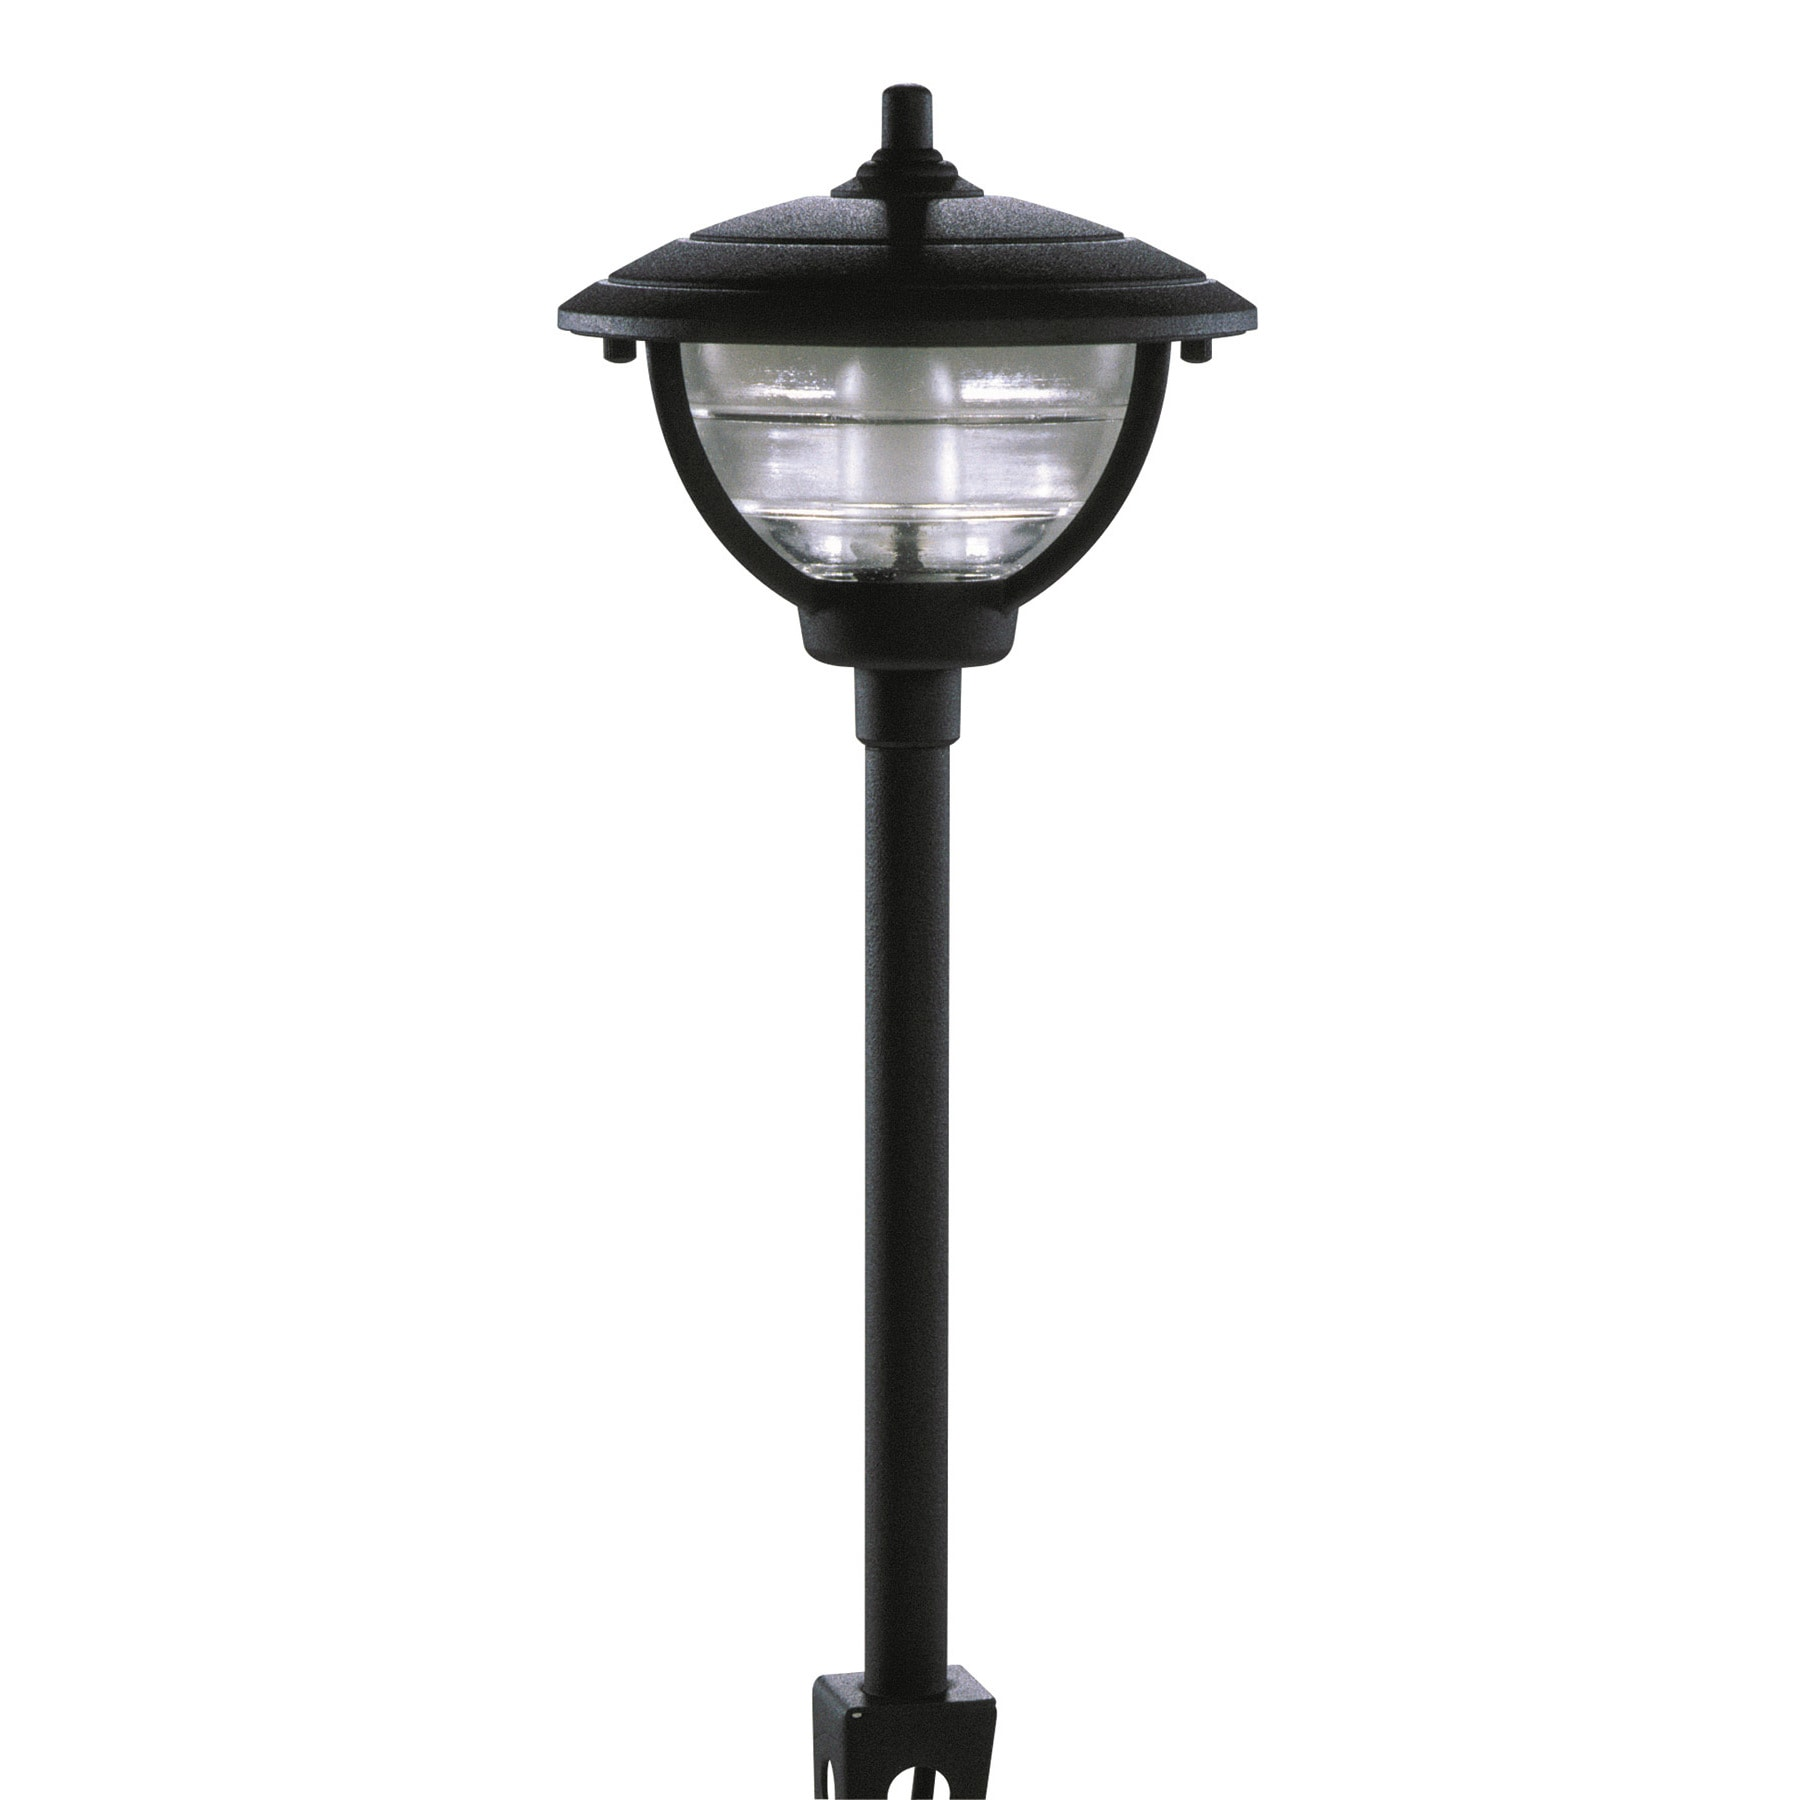 Paradise gl22788bk 12 volt black palm series path light free paradise gl22788bk 12 volt black palm series path light free shipping on orders over 45 overstock 18714510 arubaitofo Images